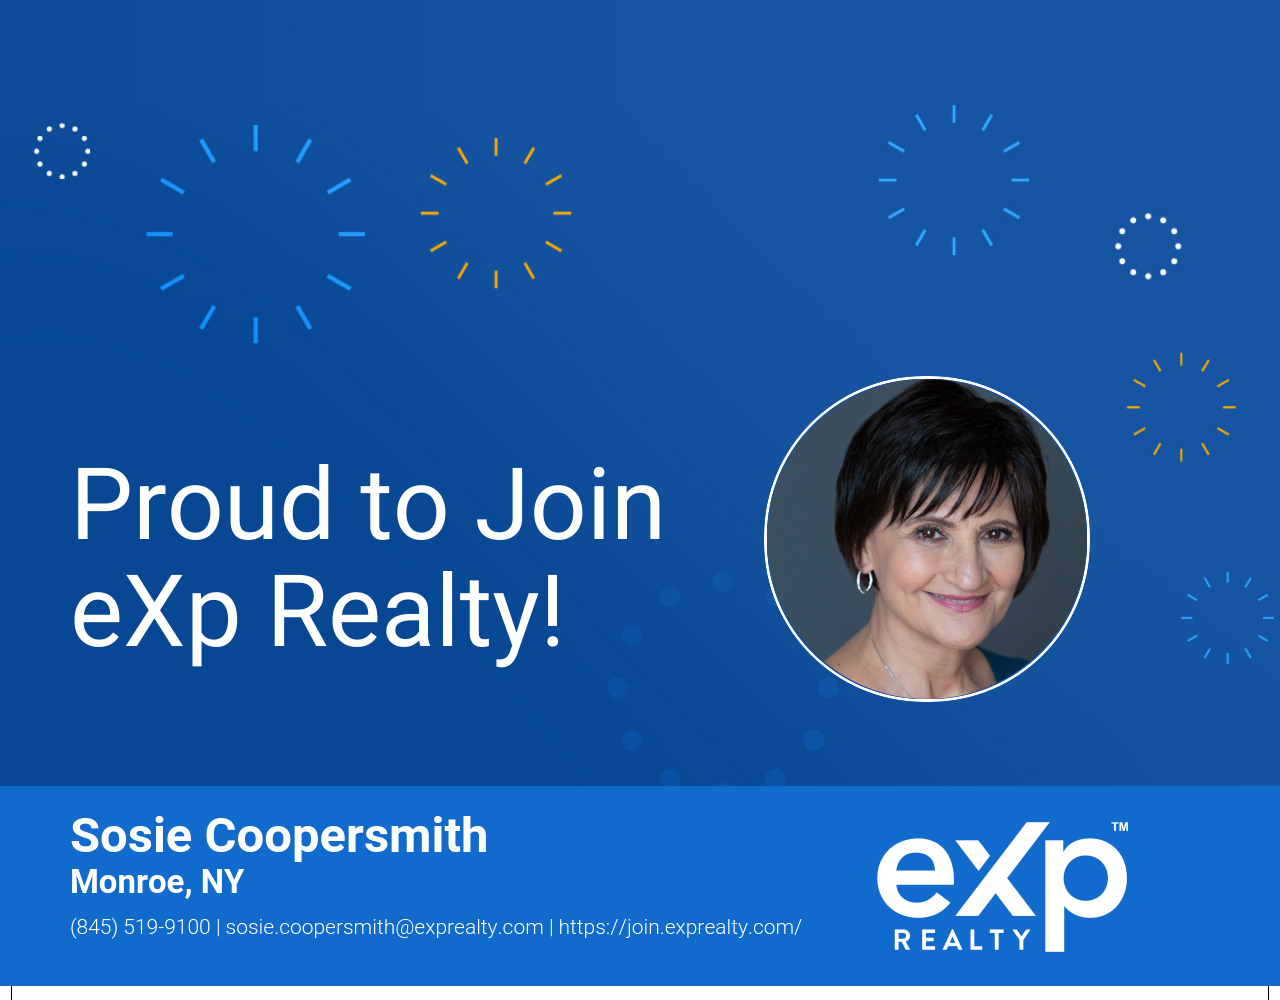 eXp Realty Welcomes Sosie Coopersmith!